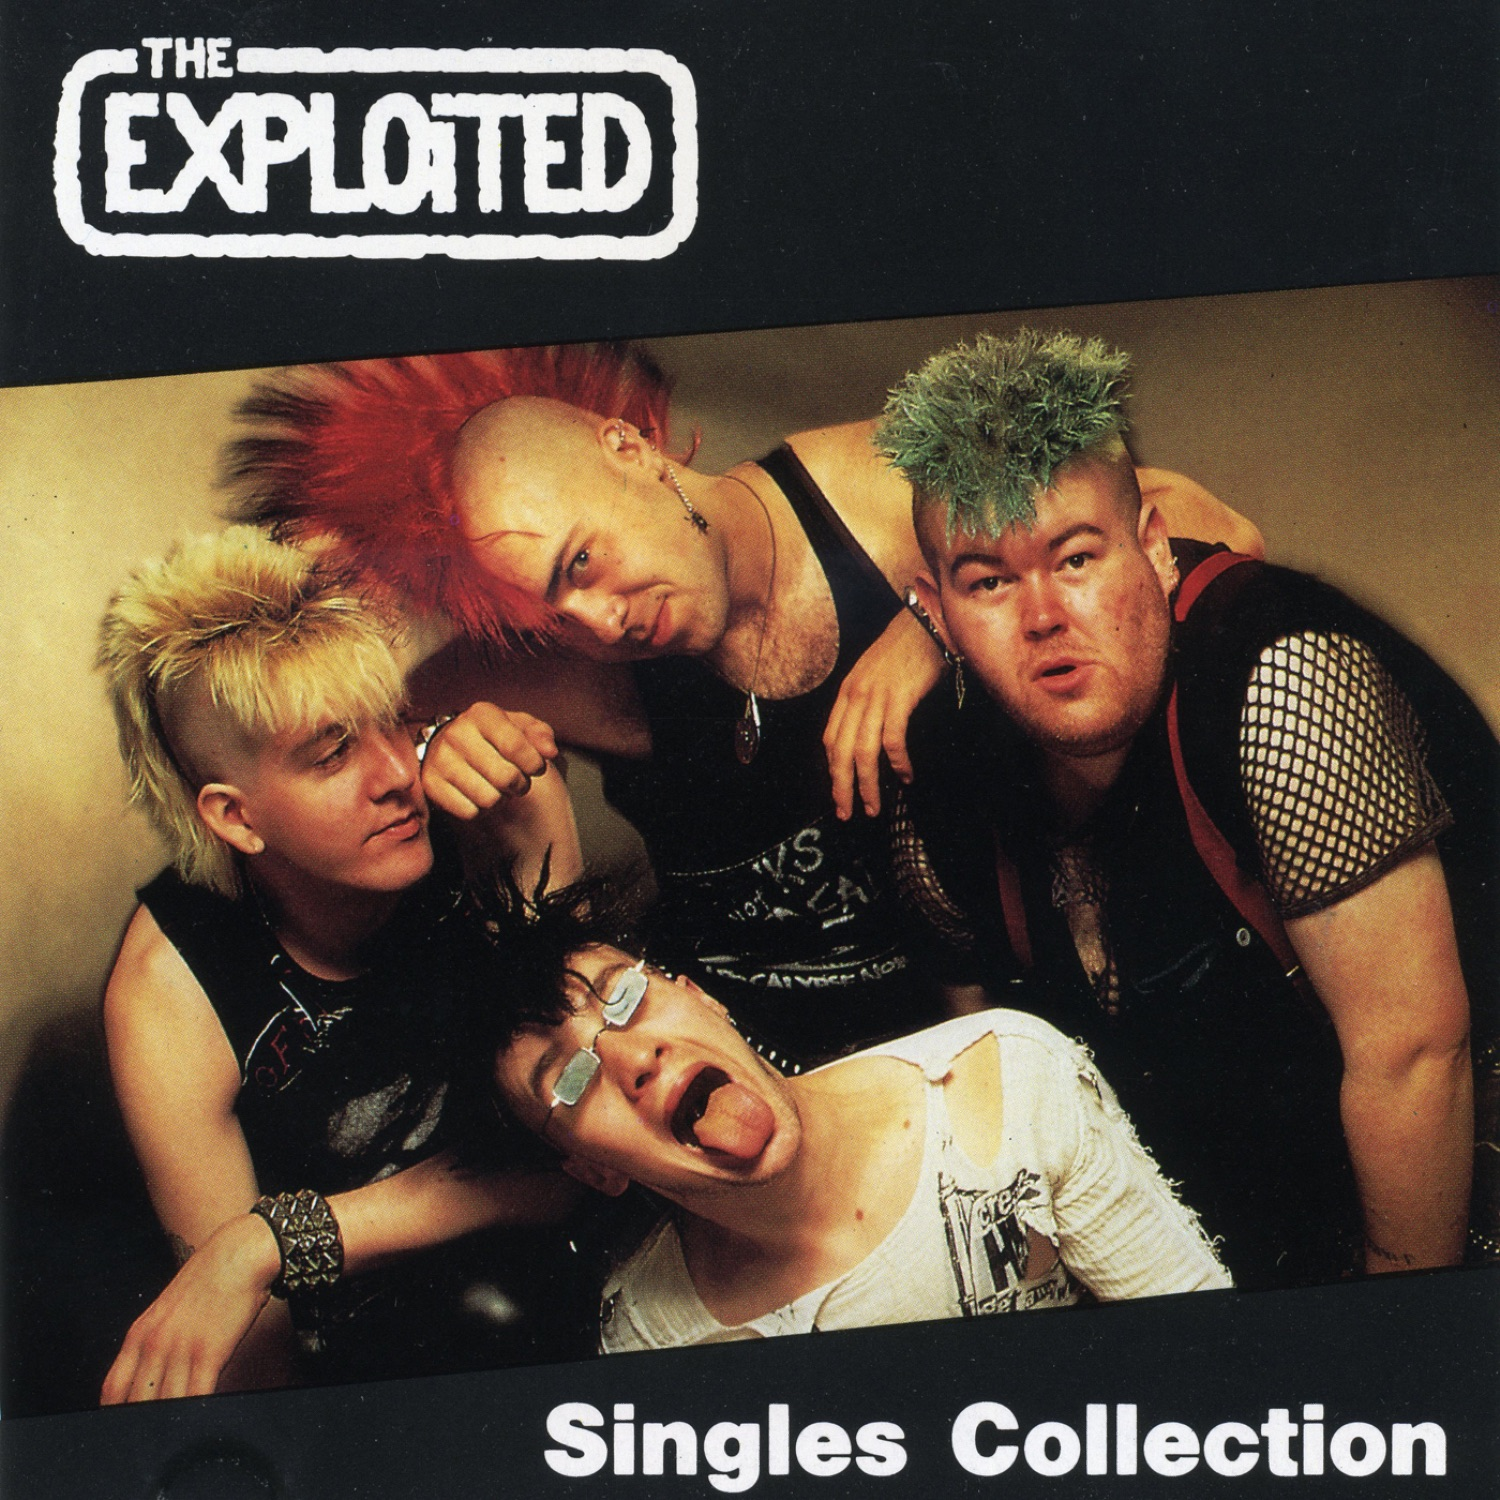 The Exploited album The Singles Collection